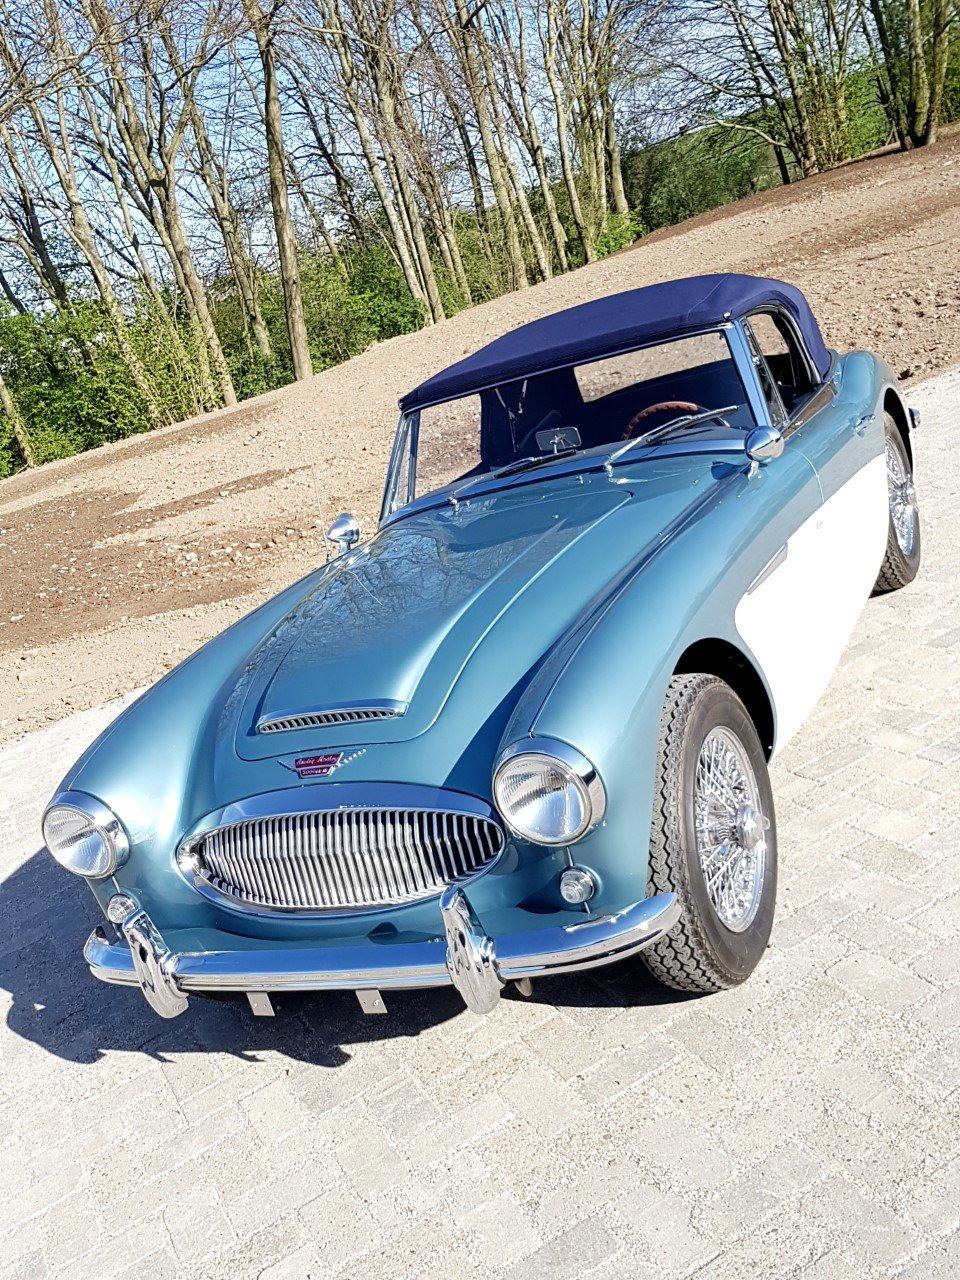 1964 Austin Healey 3000 Mark 3 convertible BJ8 (RESTORED) For Sale (picture 6 of 6)